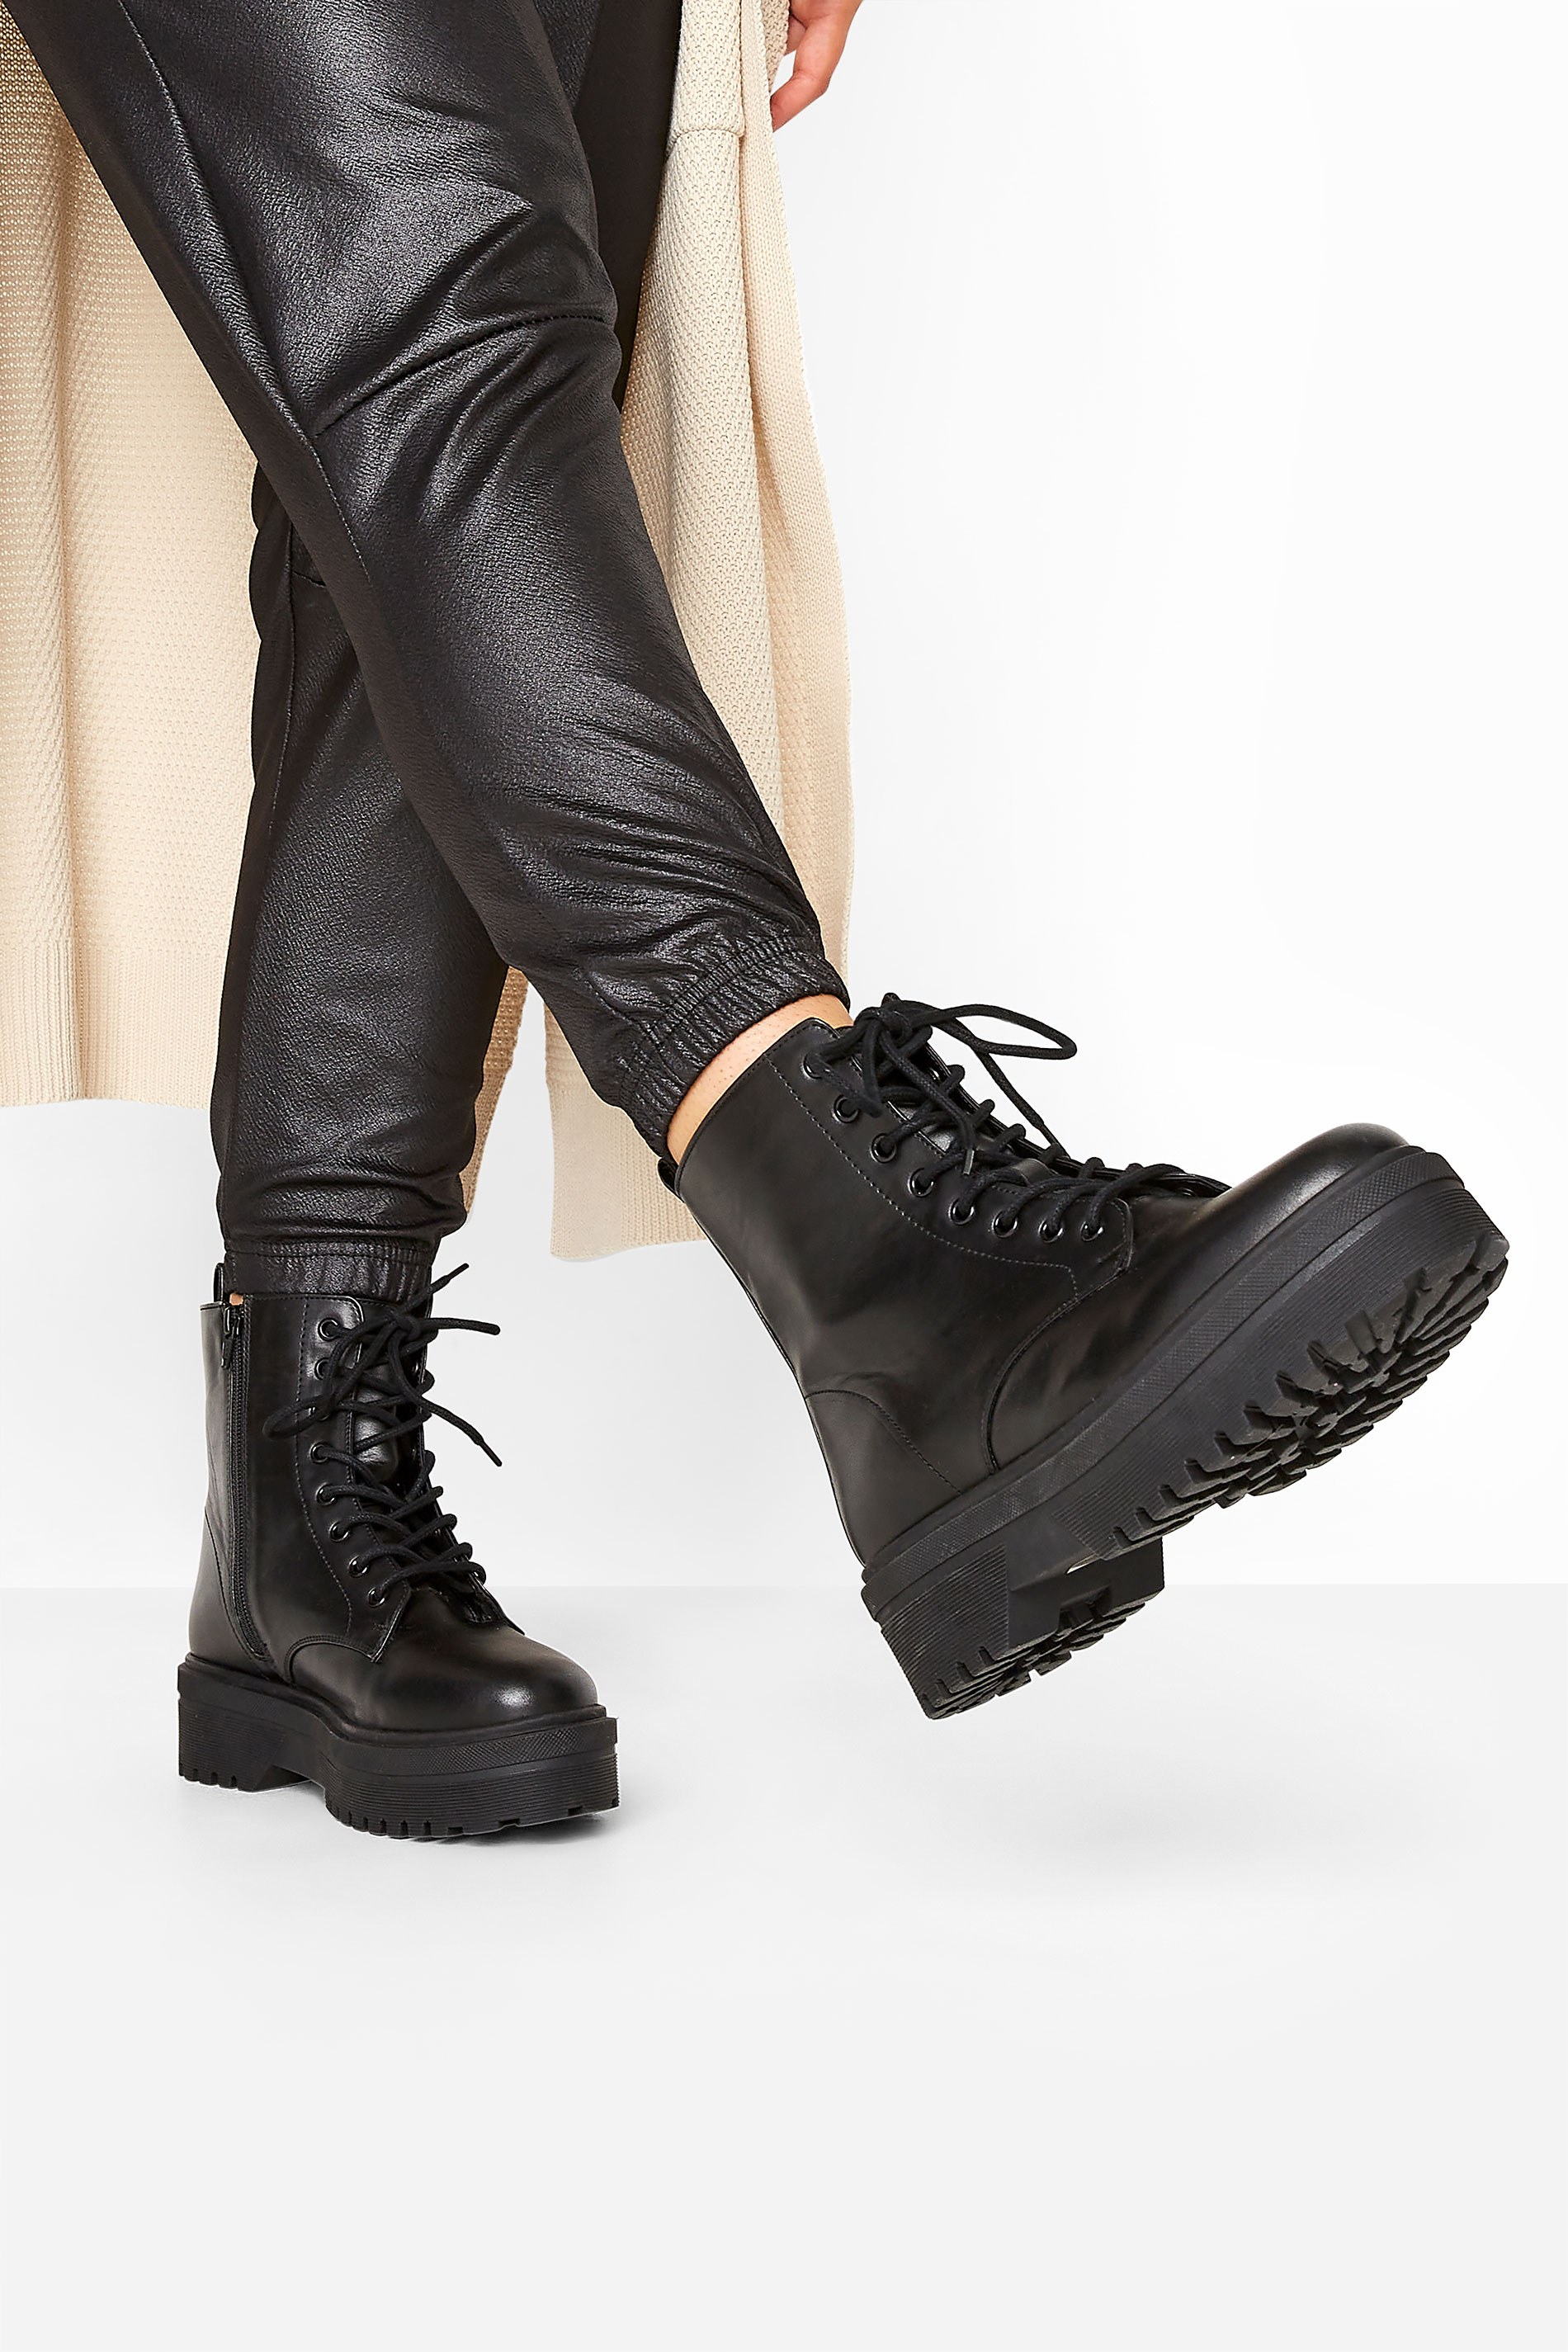 LIMITED COLLECTION Black Vegan Faux Leather Platform Lace Up Boots In Extra Wide Fit